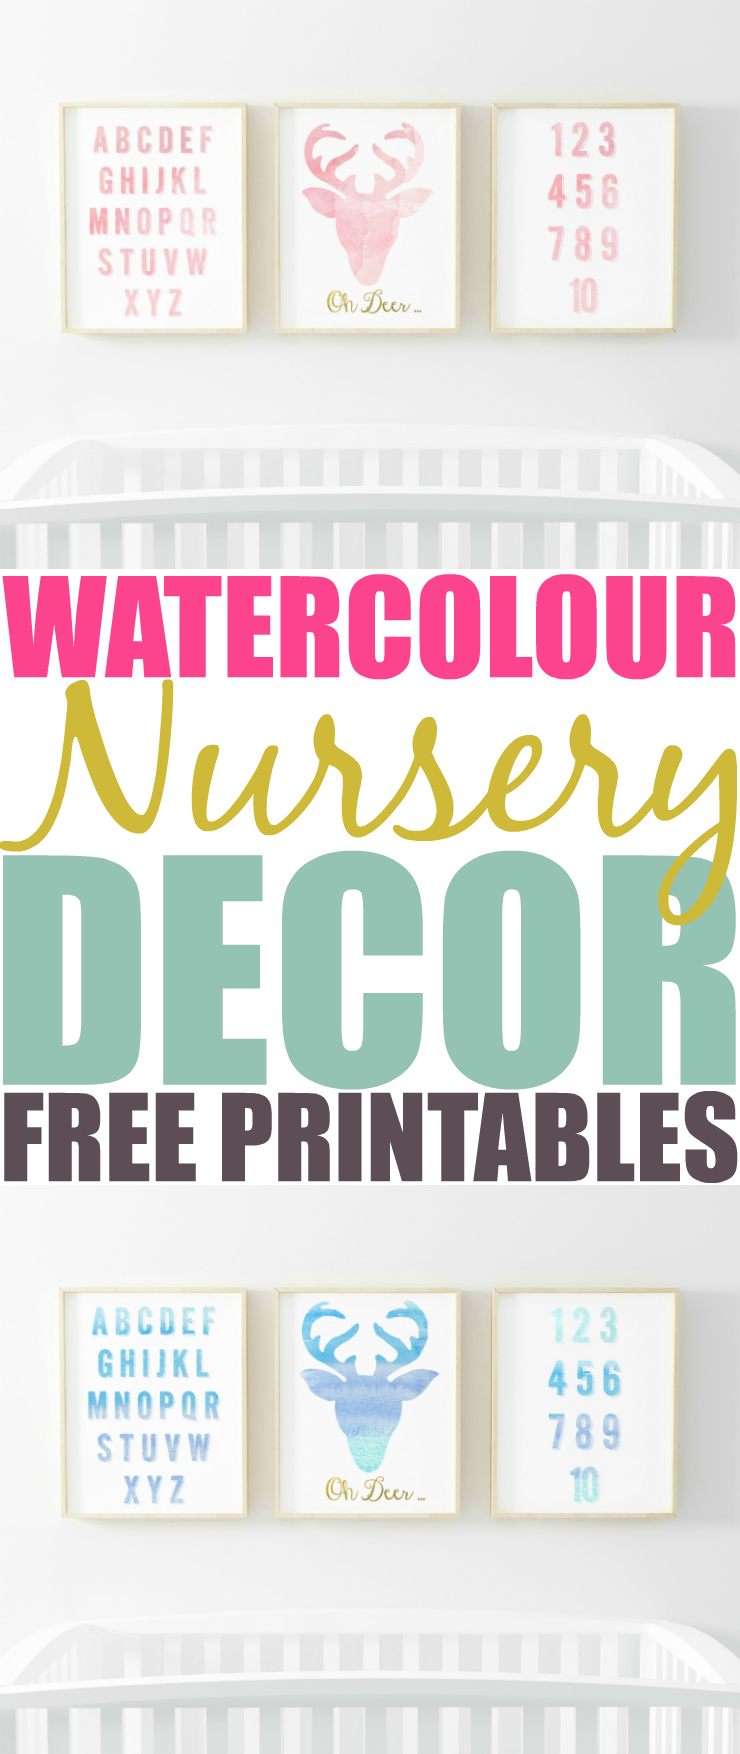 graphic relating to Free Printable Decor named Cost-free Printable Watercolour Nursery Decor - Excessive Couponing Mother